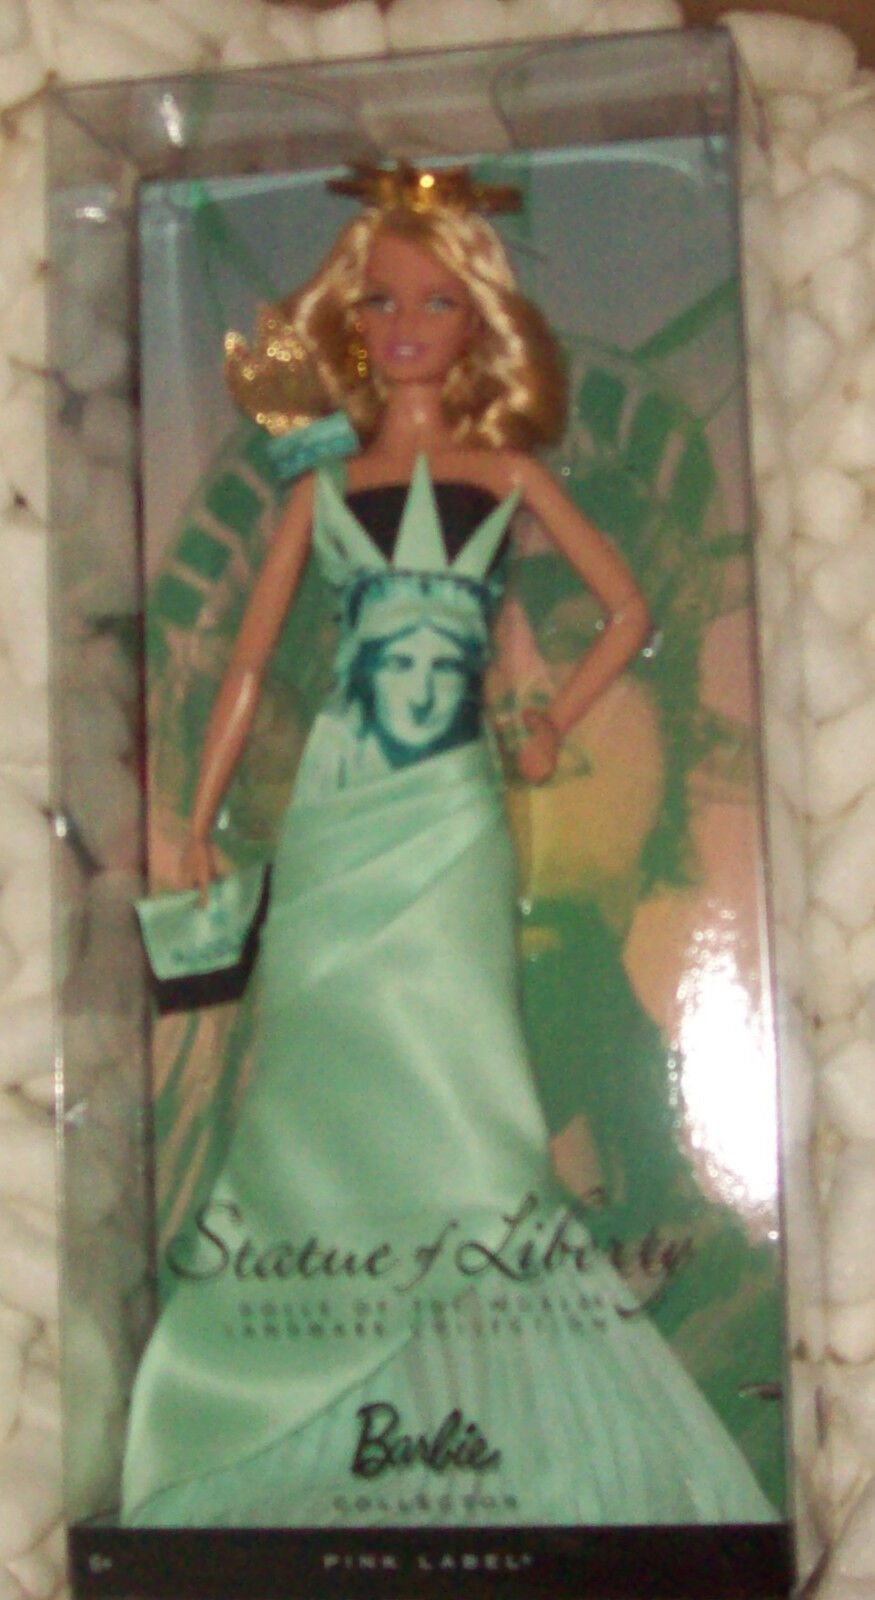 Estatua de Liberty Barbie Landmark Collection Mib